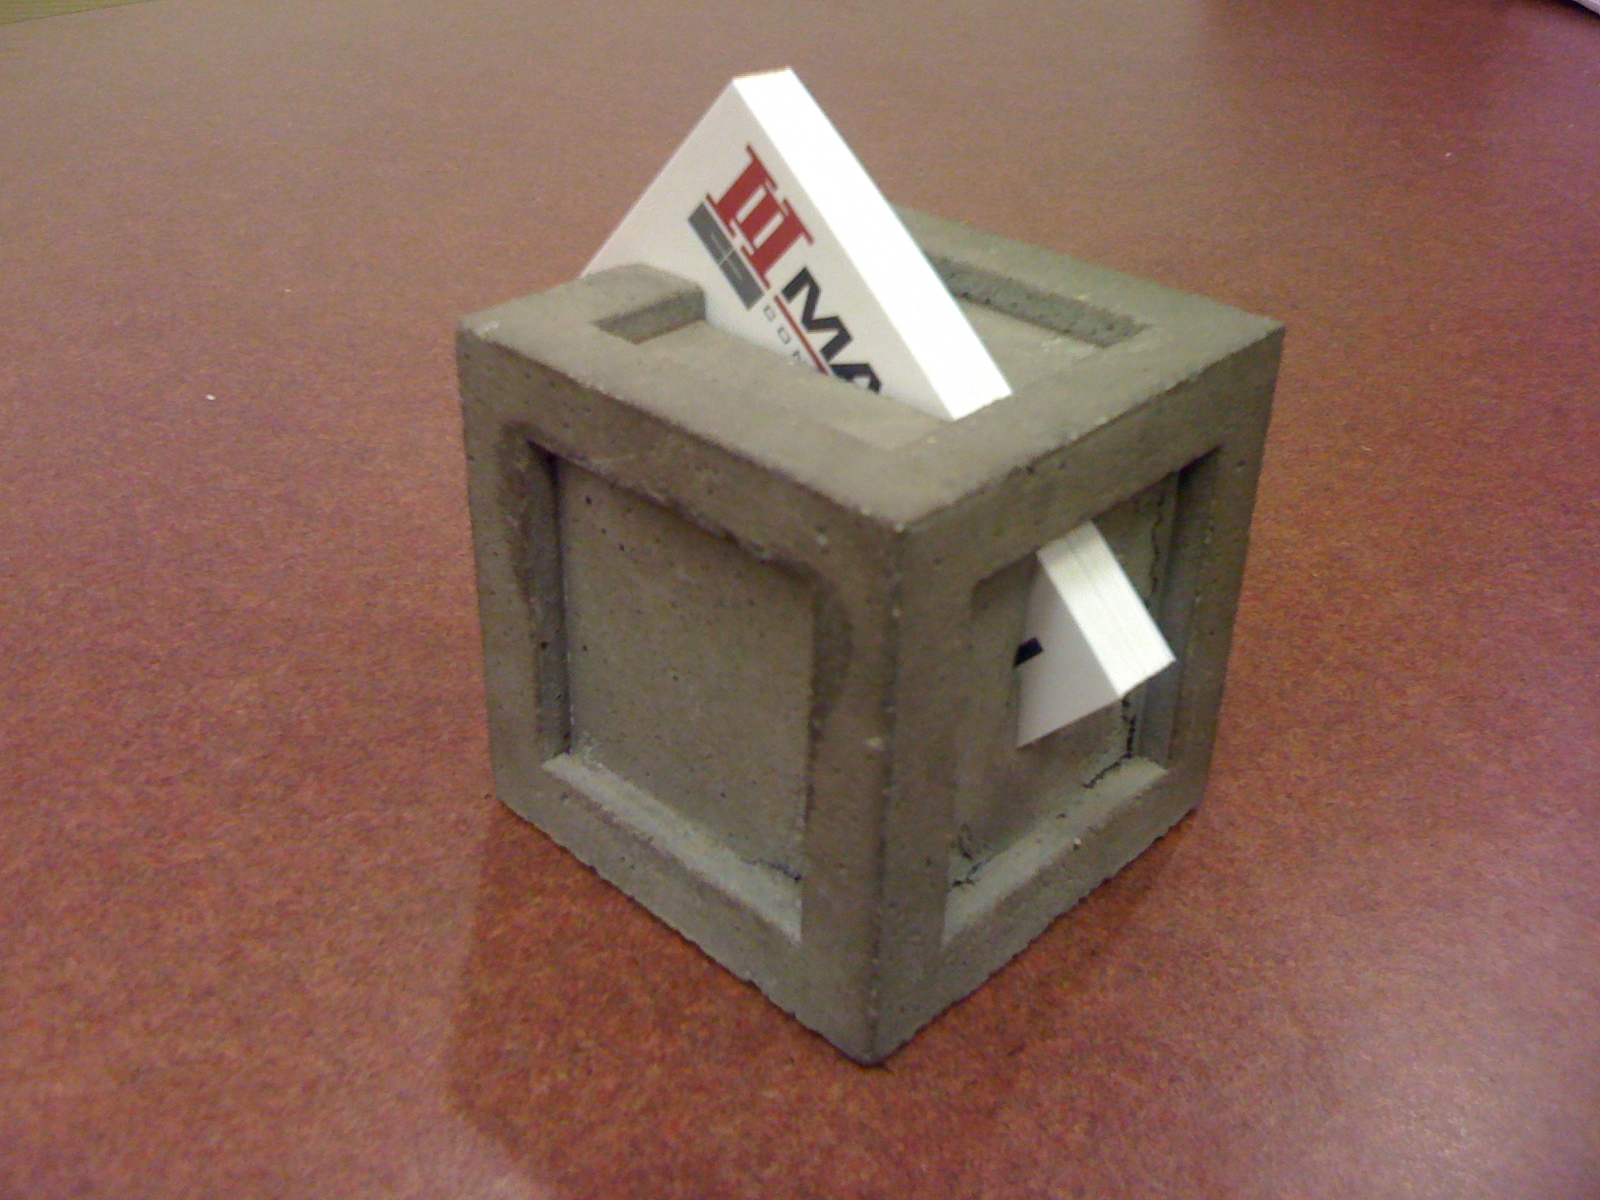 My Creativity Engine: Concrete Business Card Holder